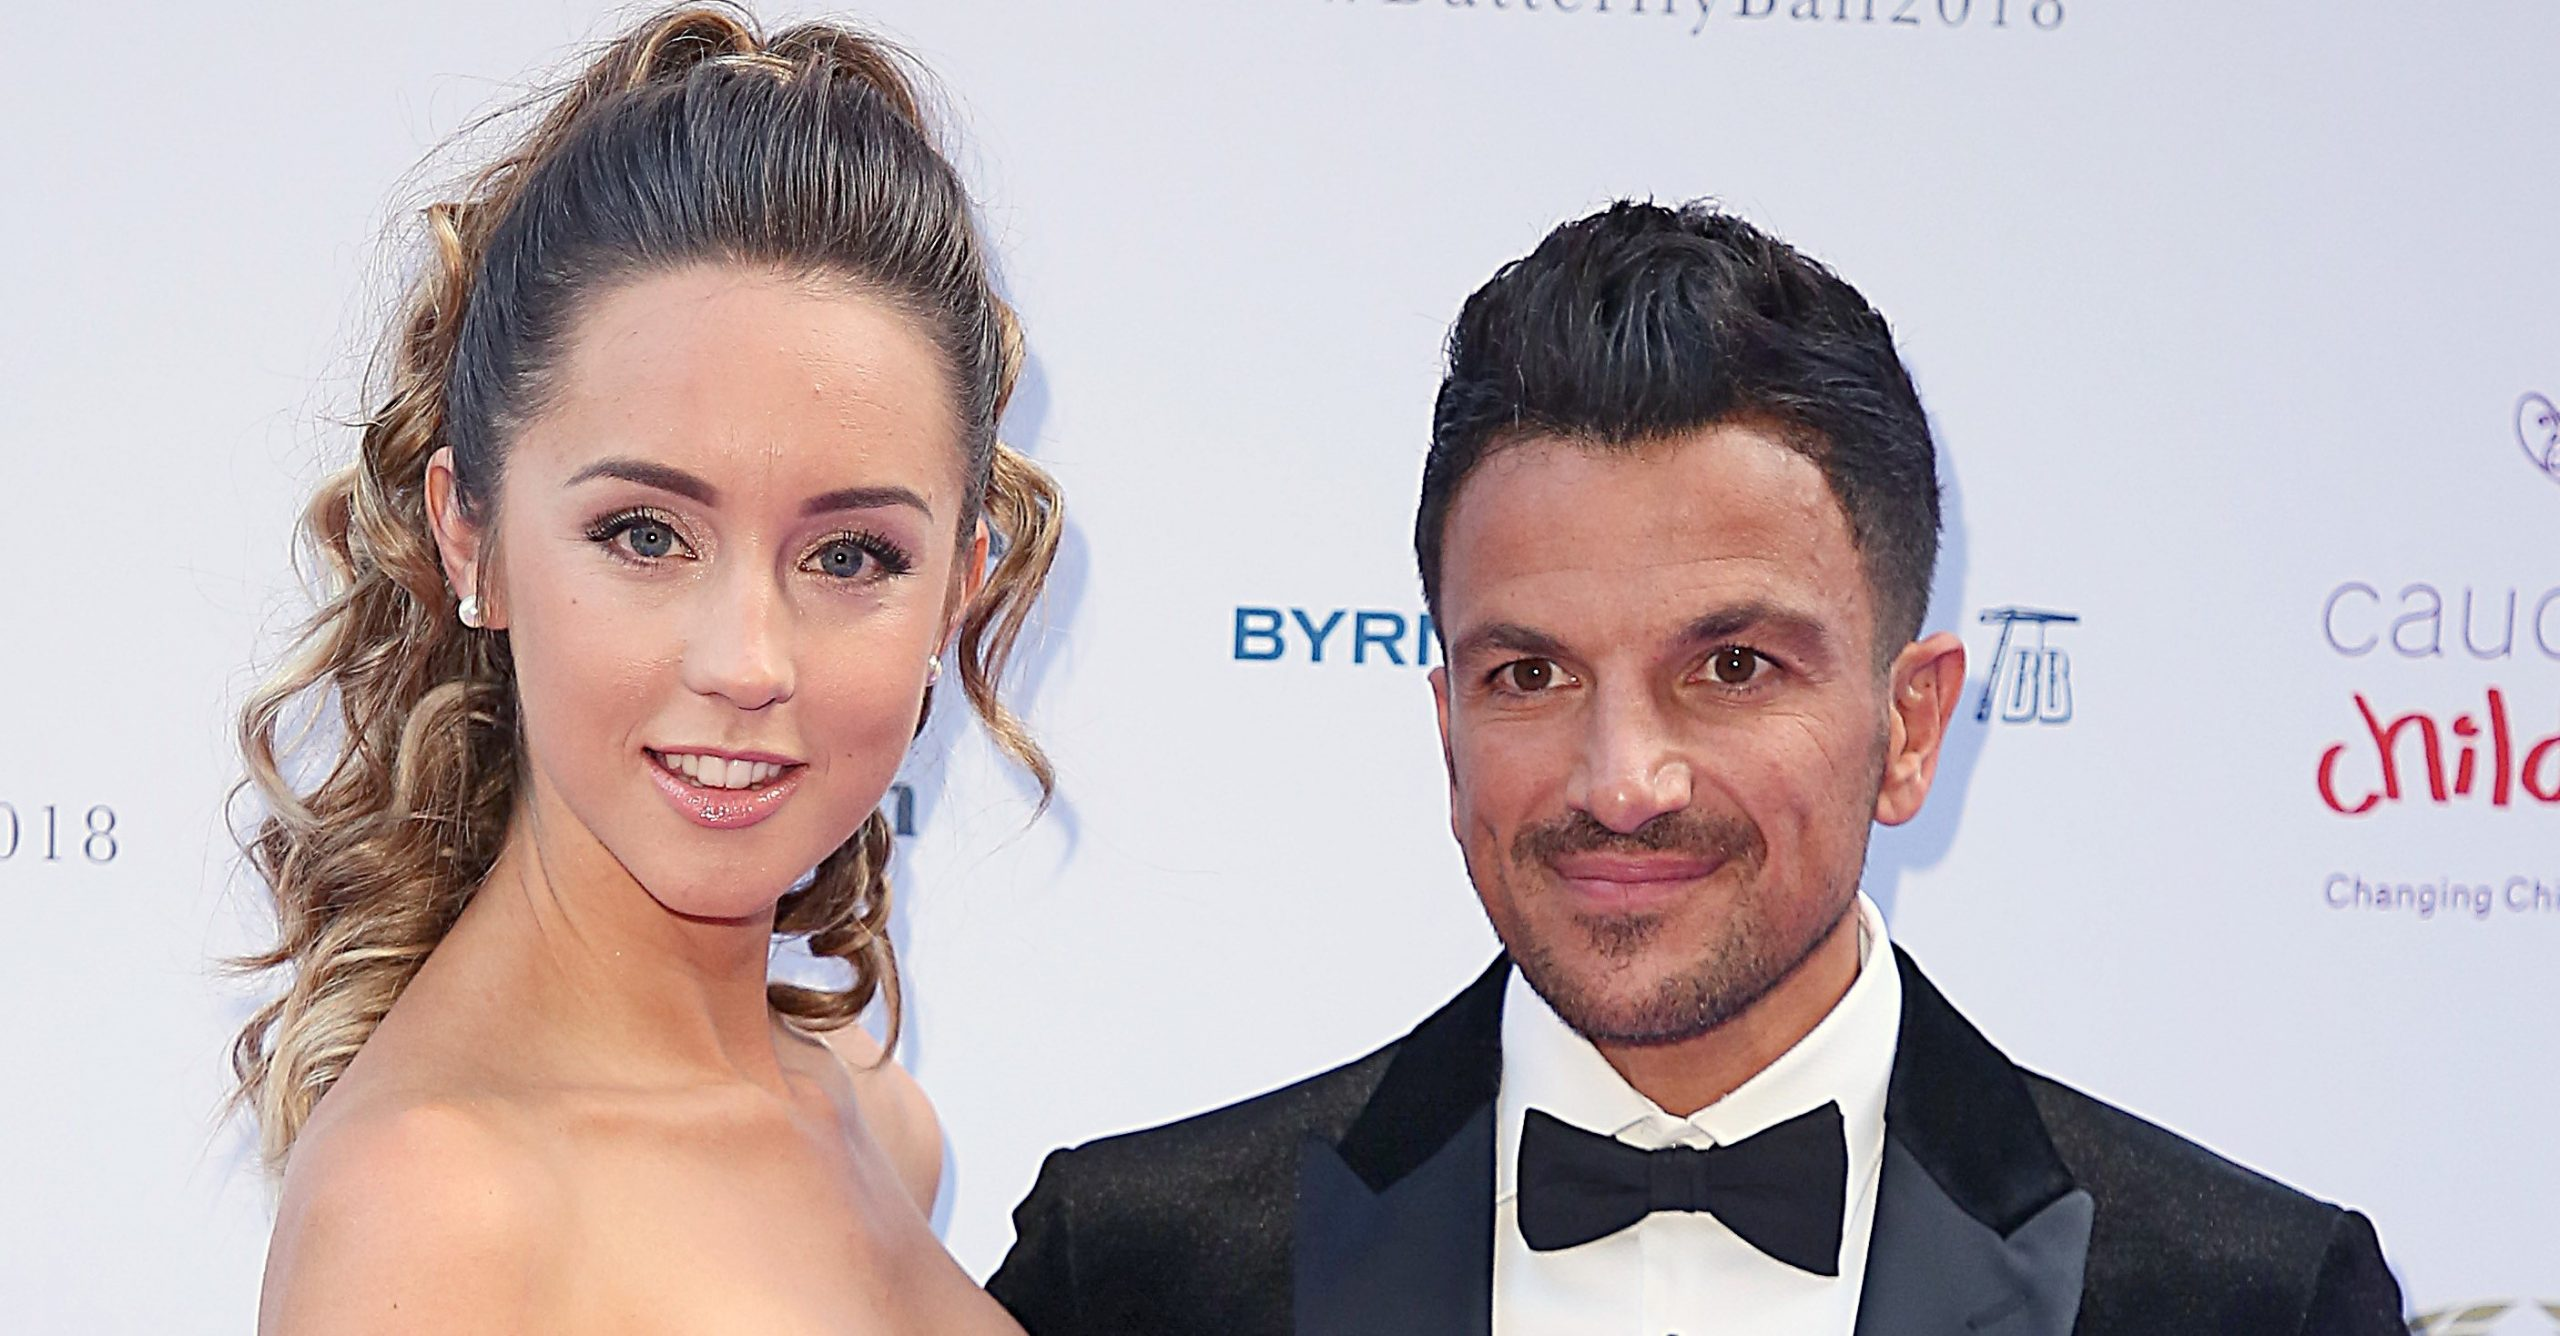 Coronavirus crisis: Peter Andre stockpiling as wife is vulnerable